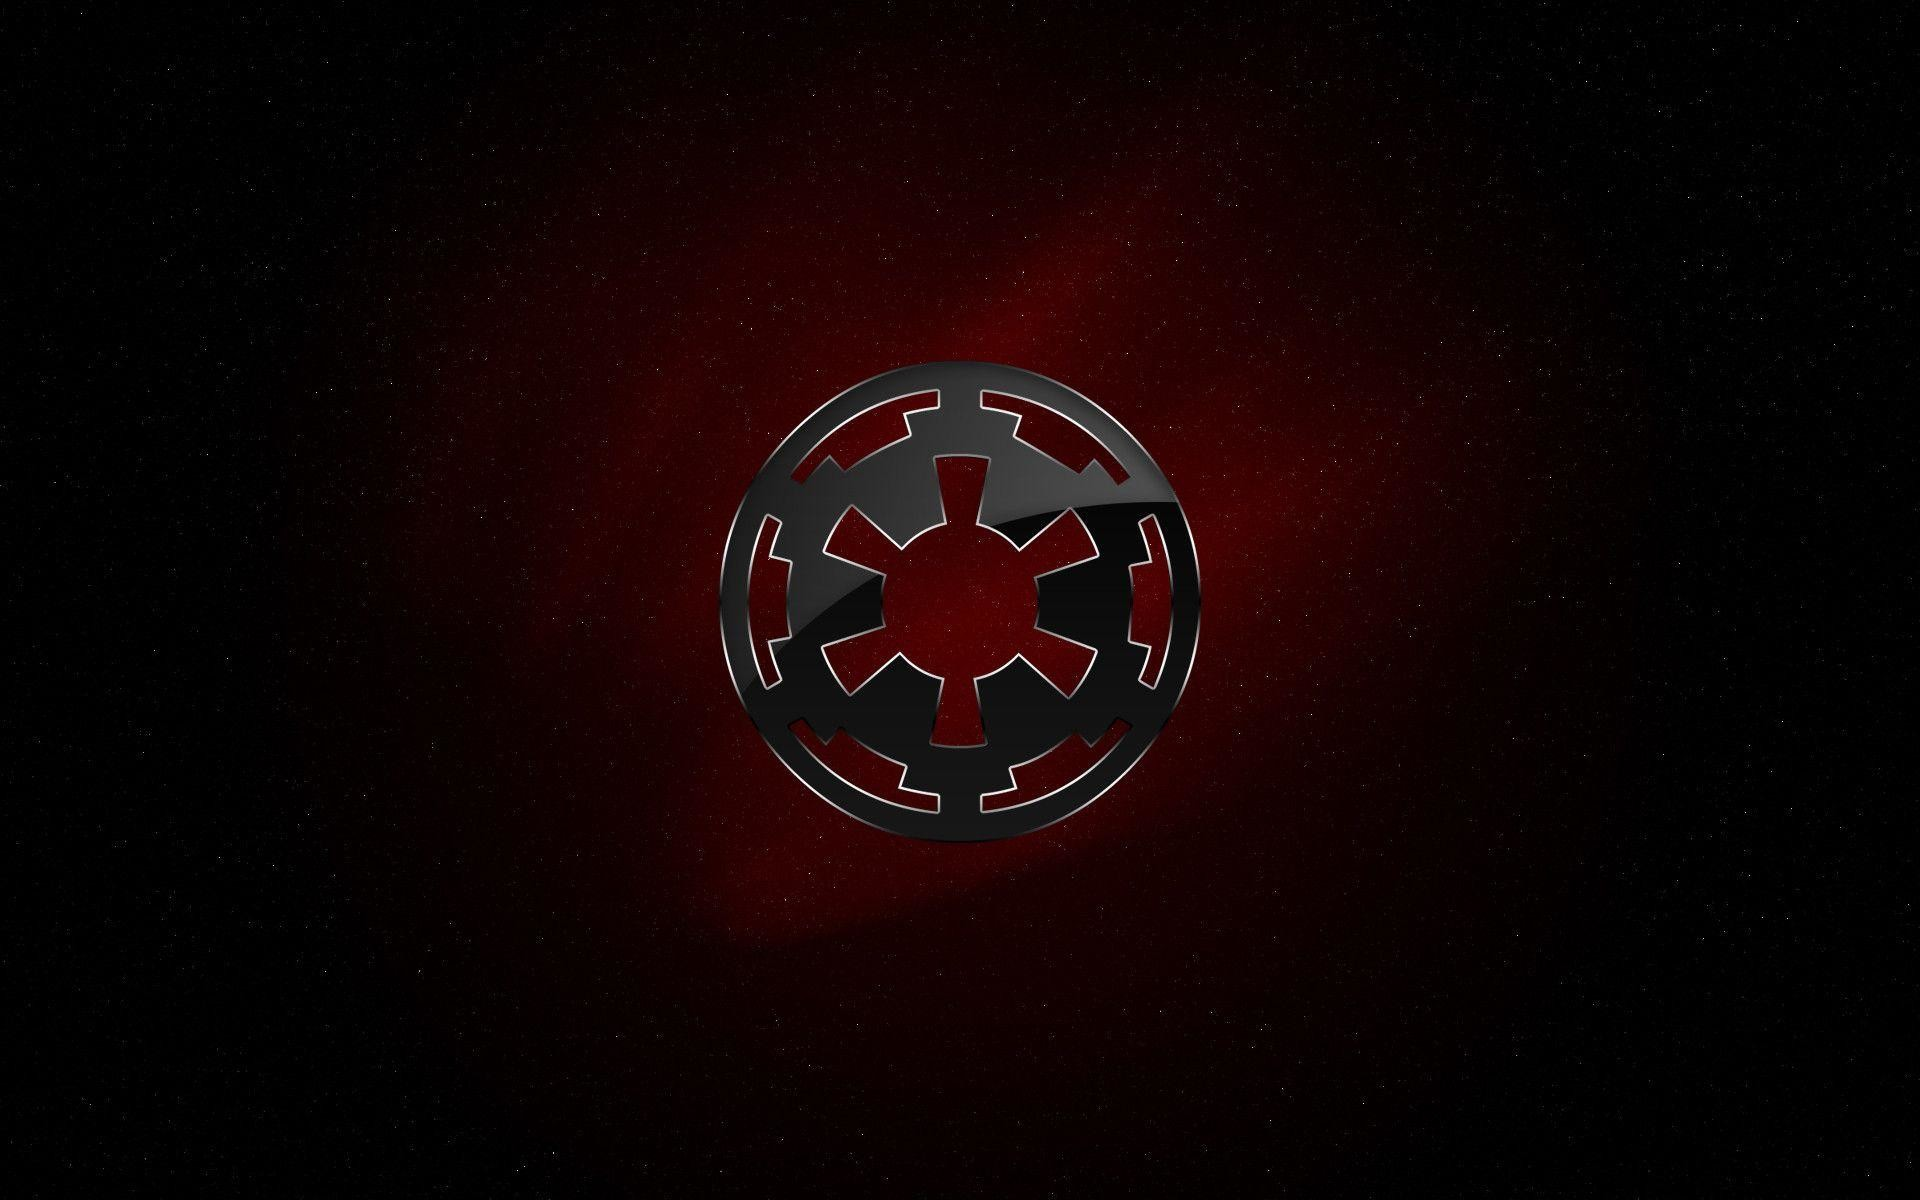 1920x1200 Star Wars Imperial Wallpaper - Viewing Gallery